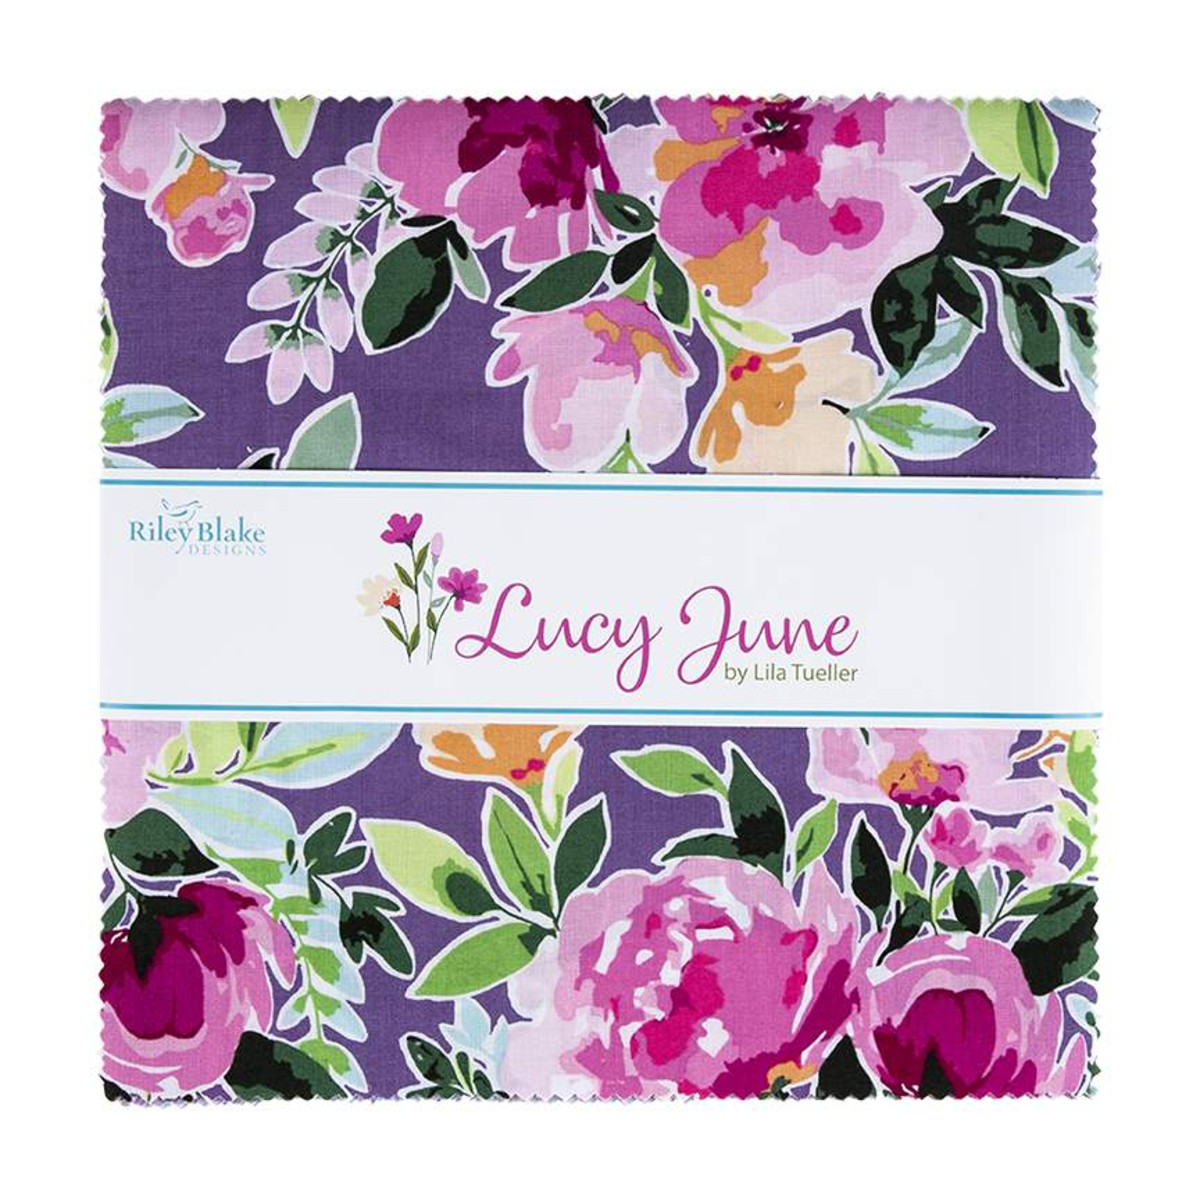 Riley Blake Layer Cake - Lucy June by Lila Tueller